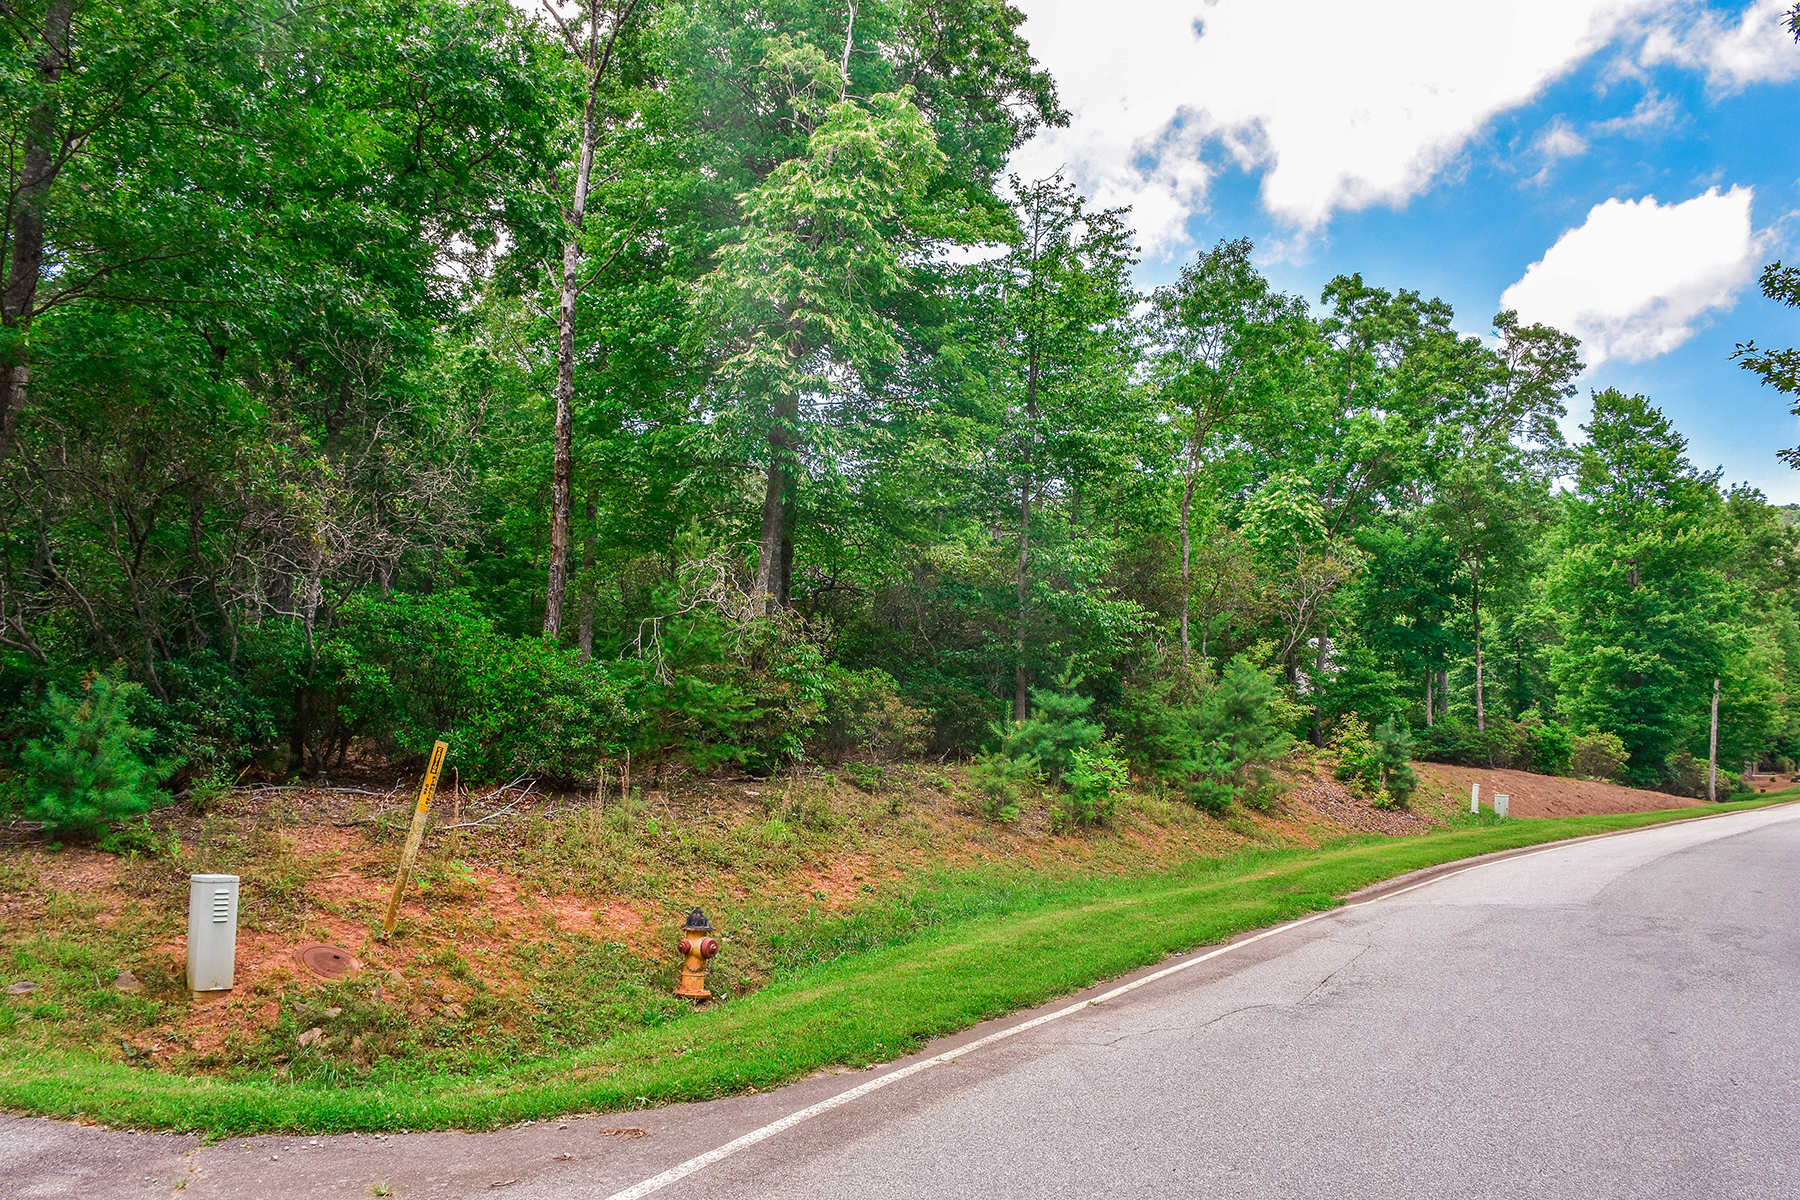 Land for Active at THE CLIFFS AT WALNUT CREEK 1912 White Tree Trail , 201 Arden, North Carolina 28704 United States